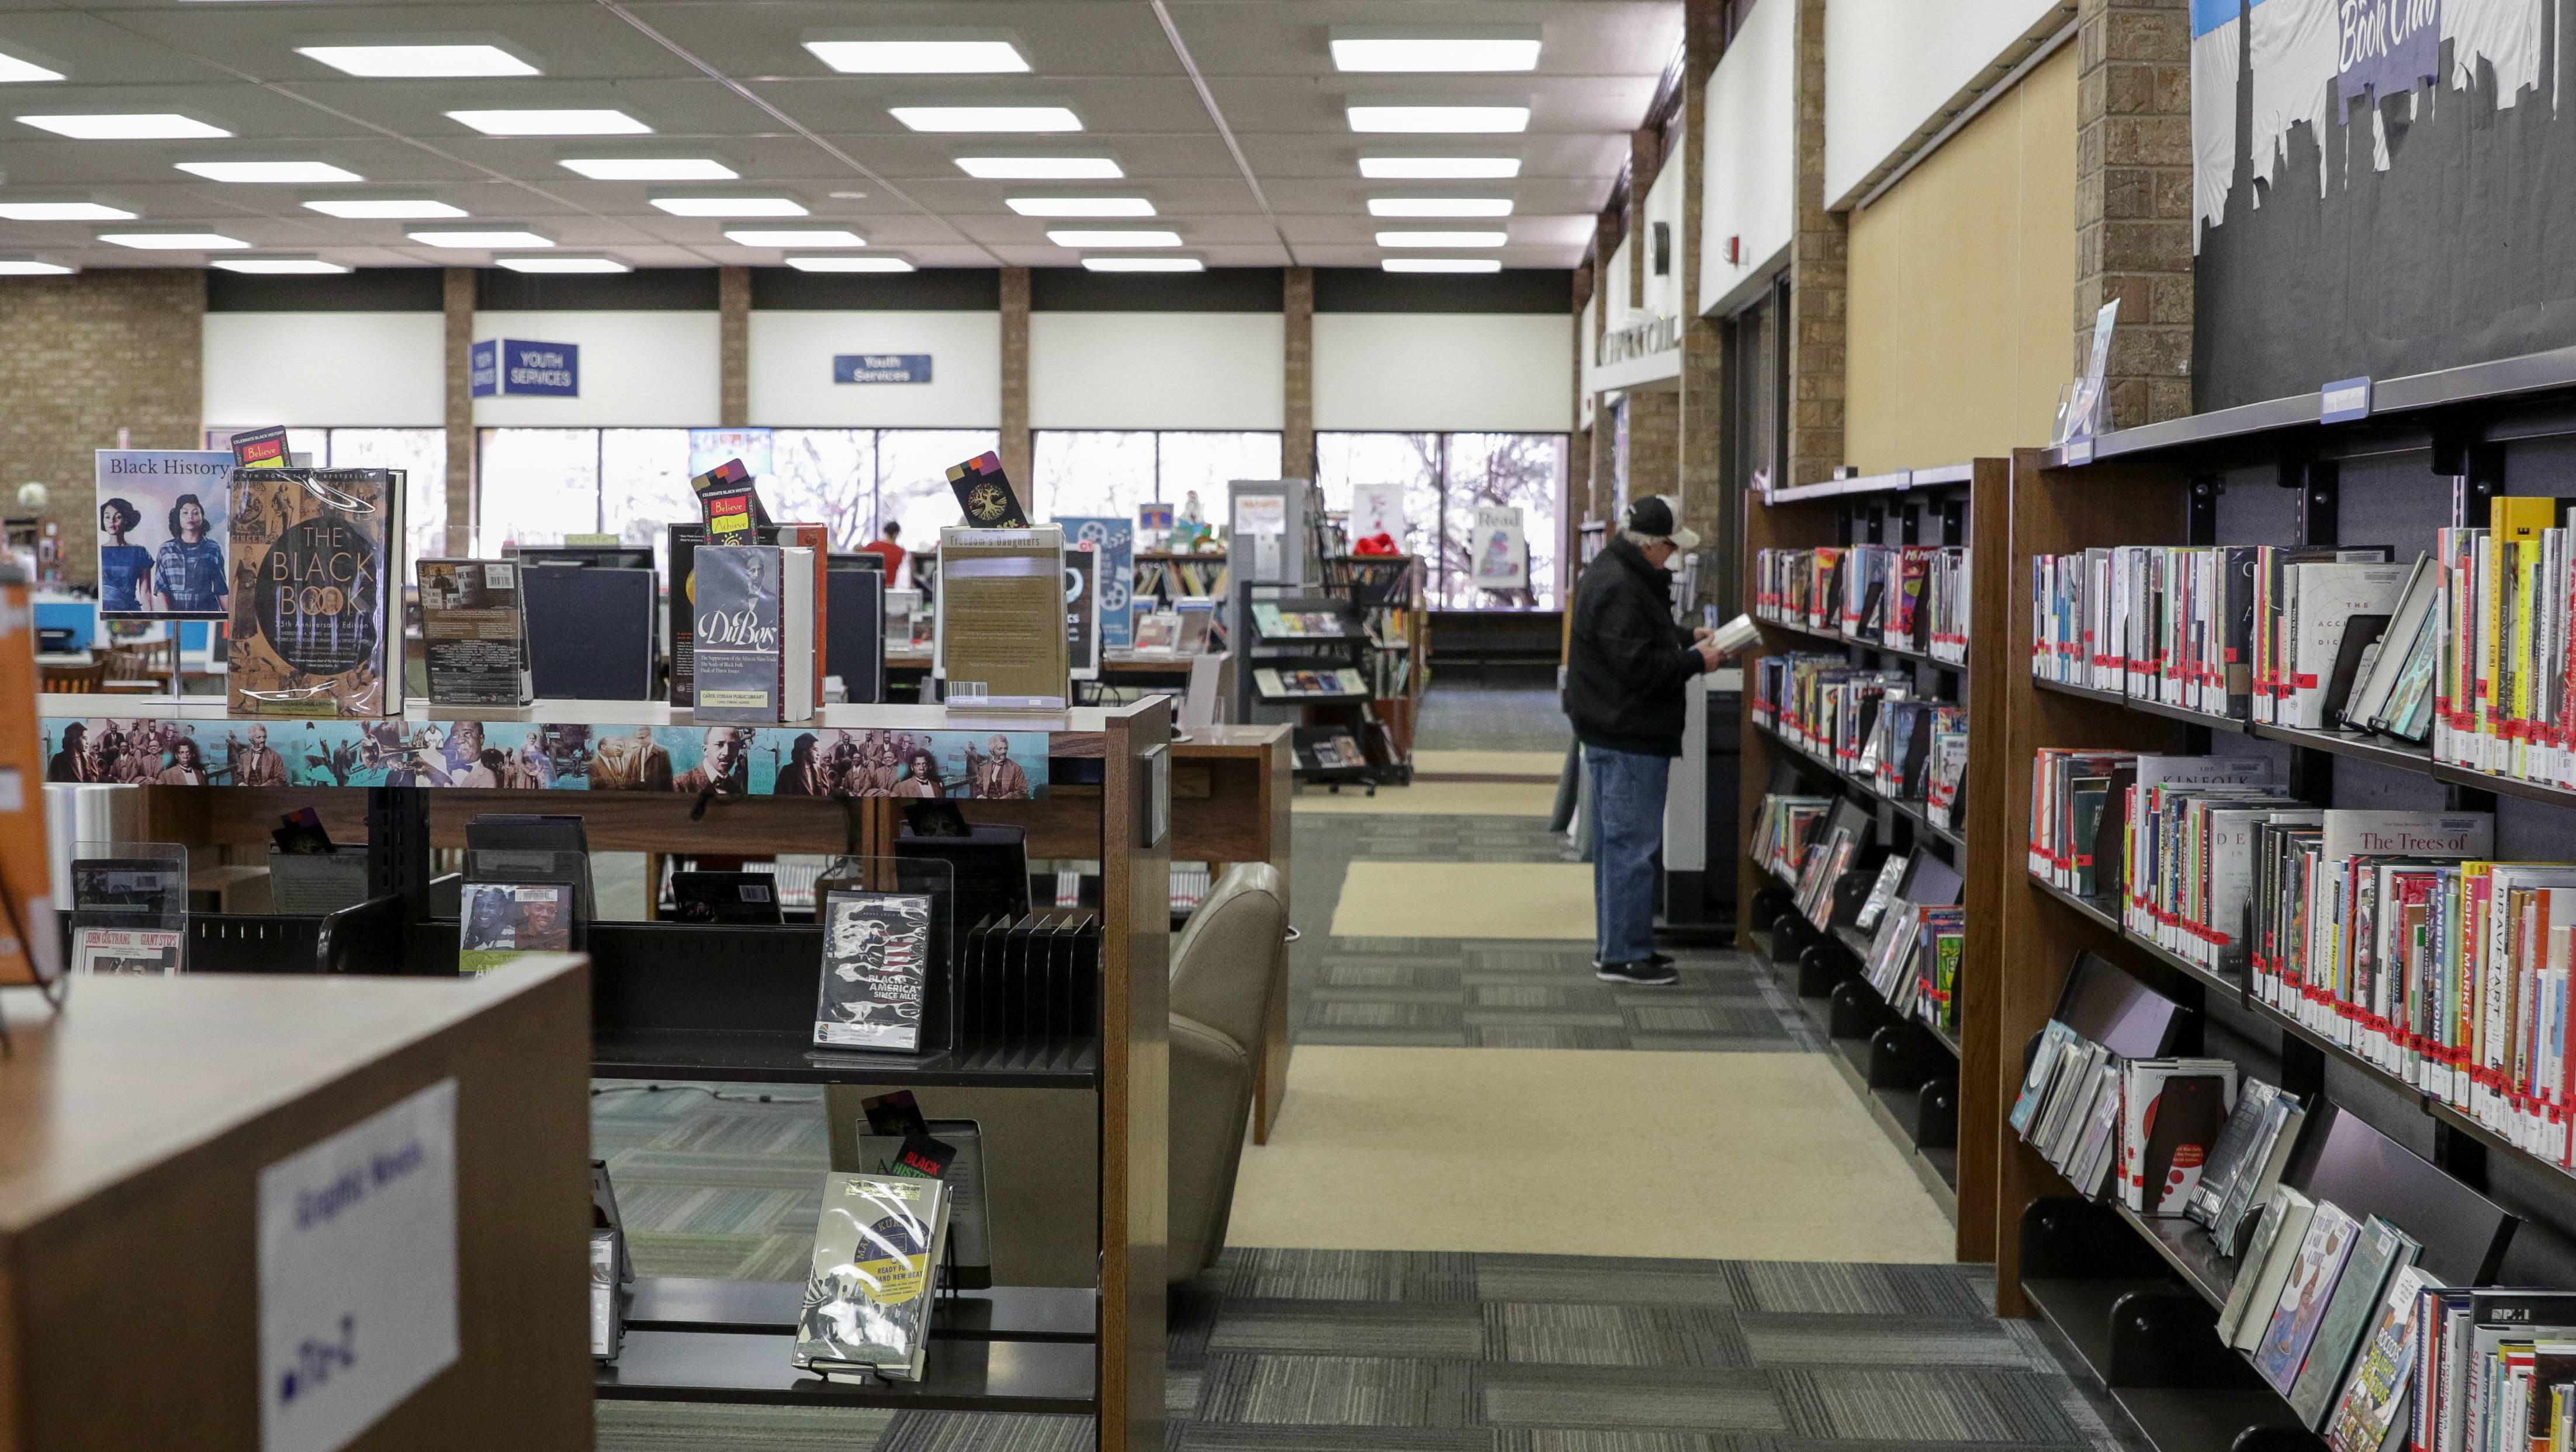 The Carol Stream Library has about 17,500 registered users, but drew 208,000 visitors in fiscal 2017.